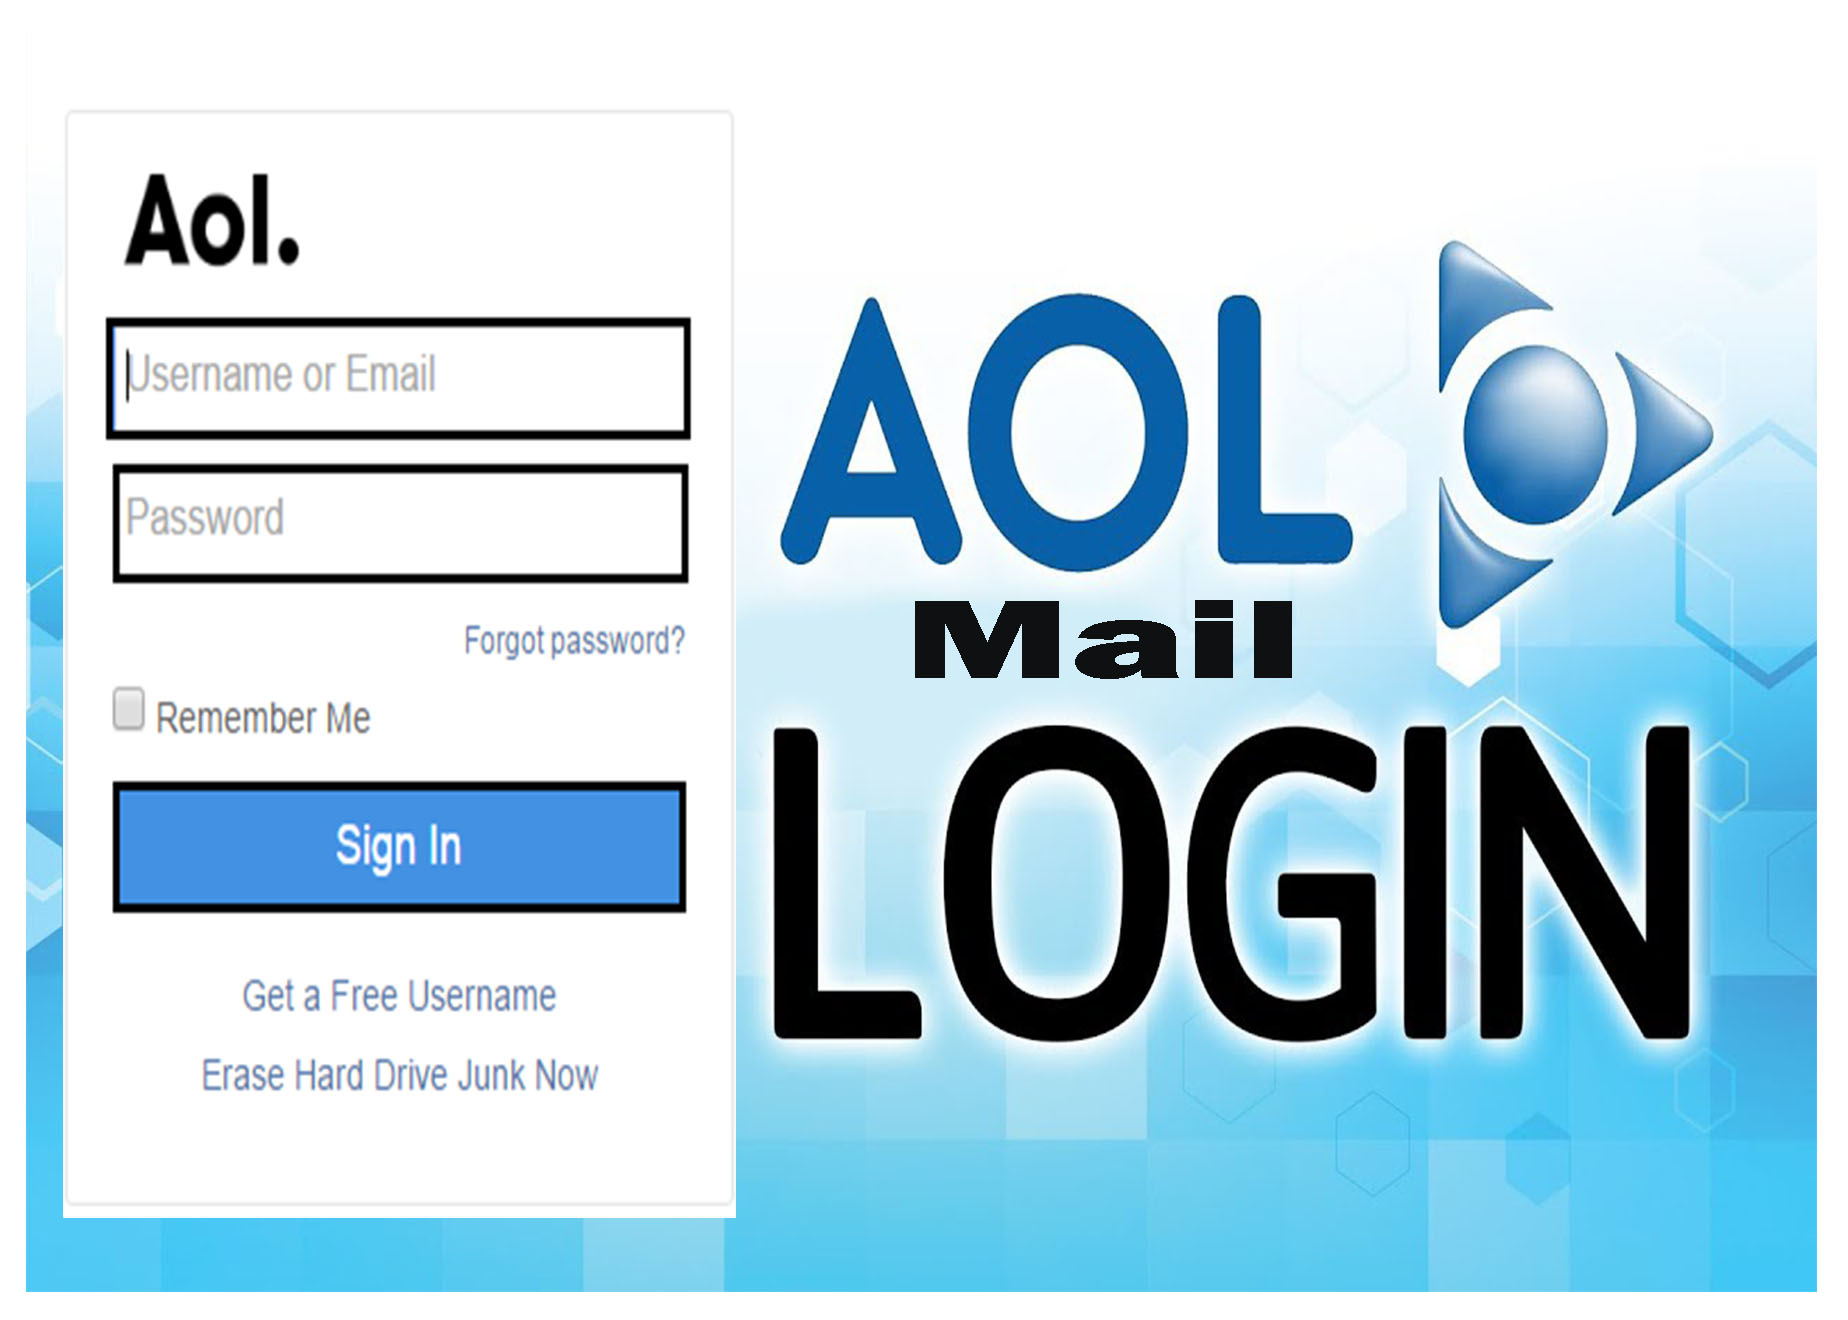 Aol Mail Login Sign In To Aol Mail Create Aol Email Account On Aol Com Tipcrewblog